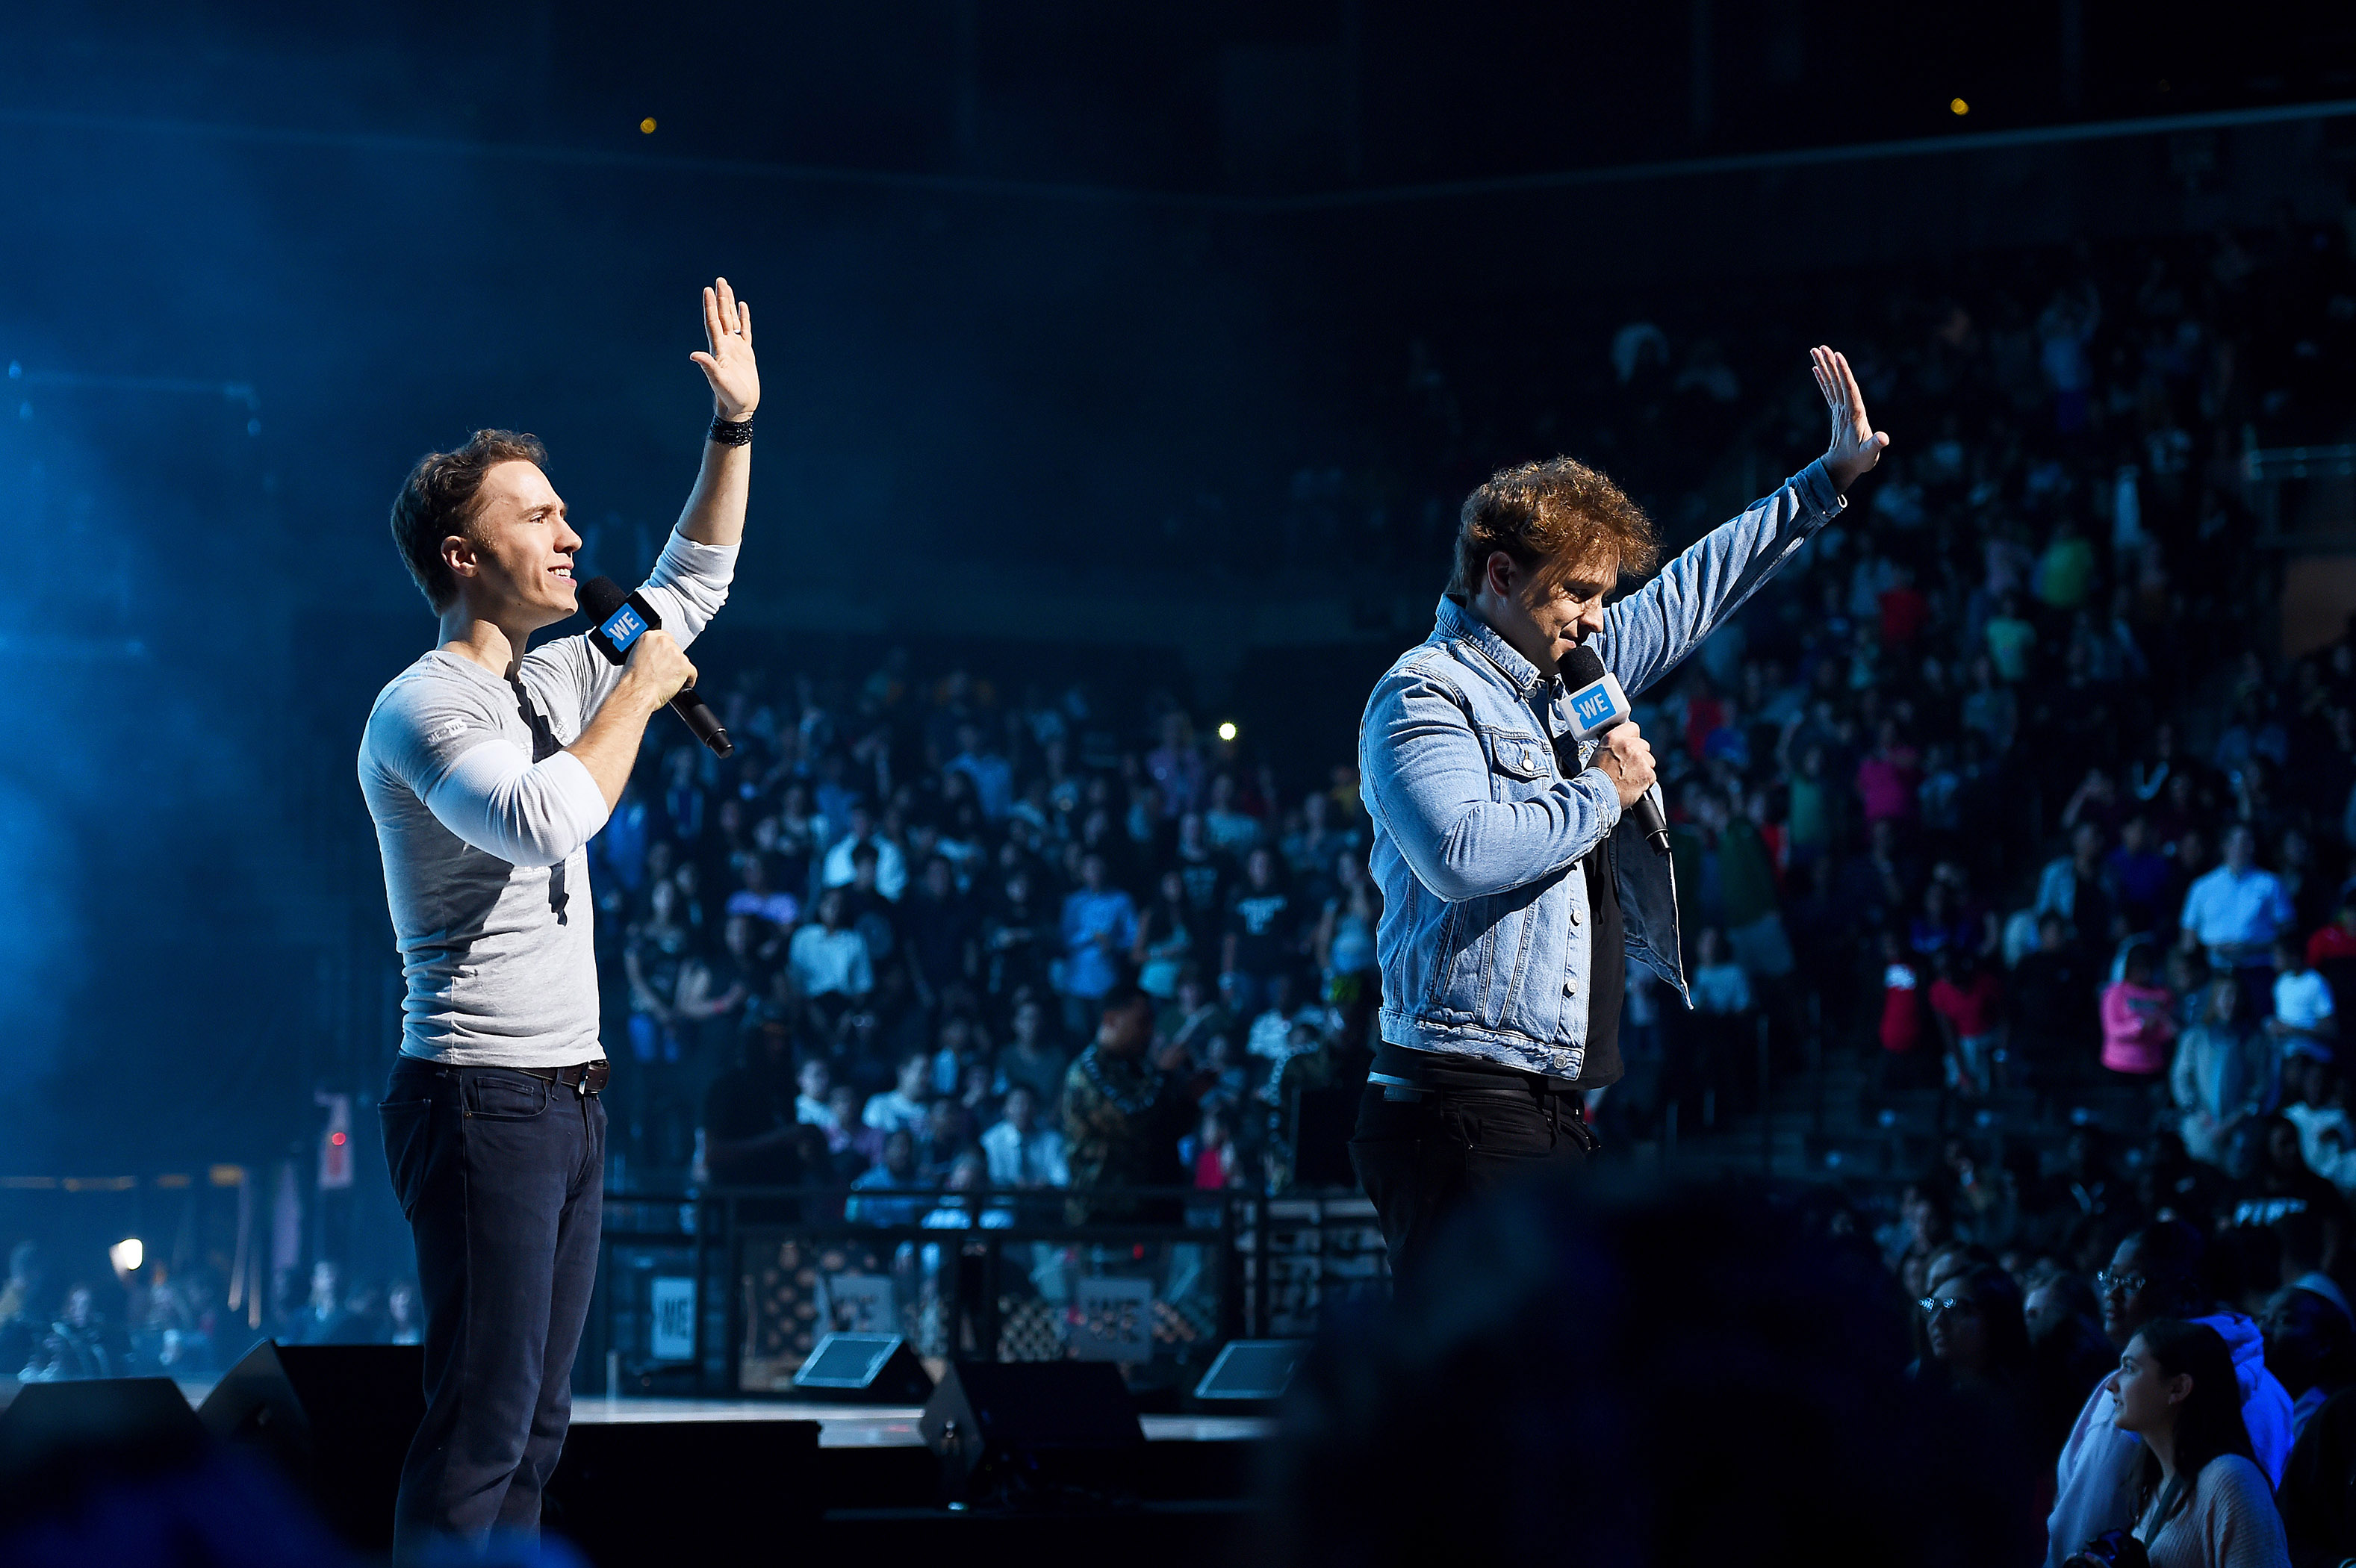 Craig (left) and Marc speak to thousands during WE Day UN in New York City last fall (Ilya S. Savenok/Getty Images)